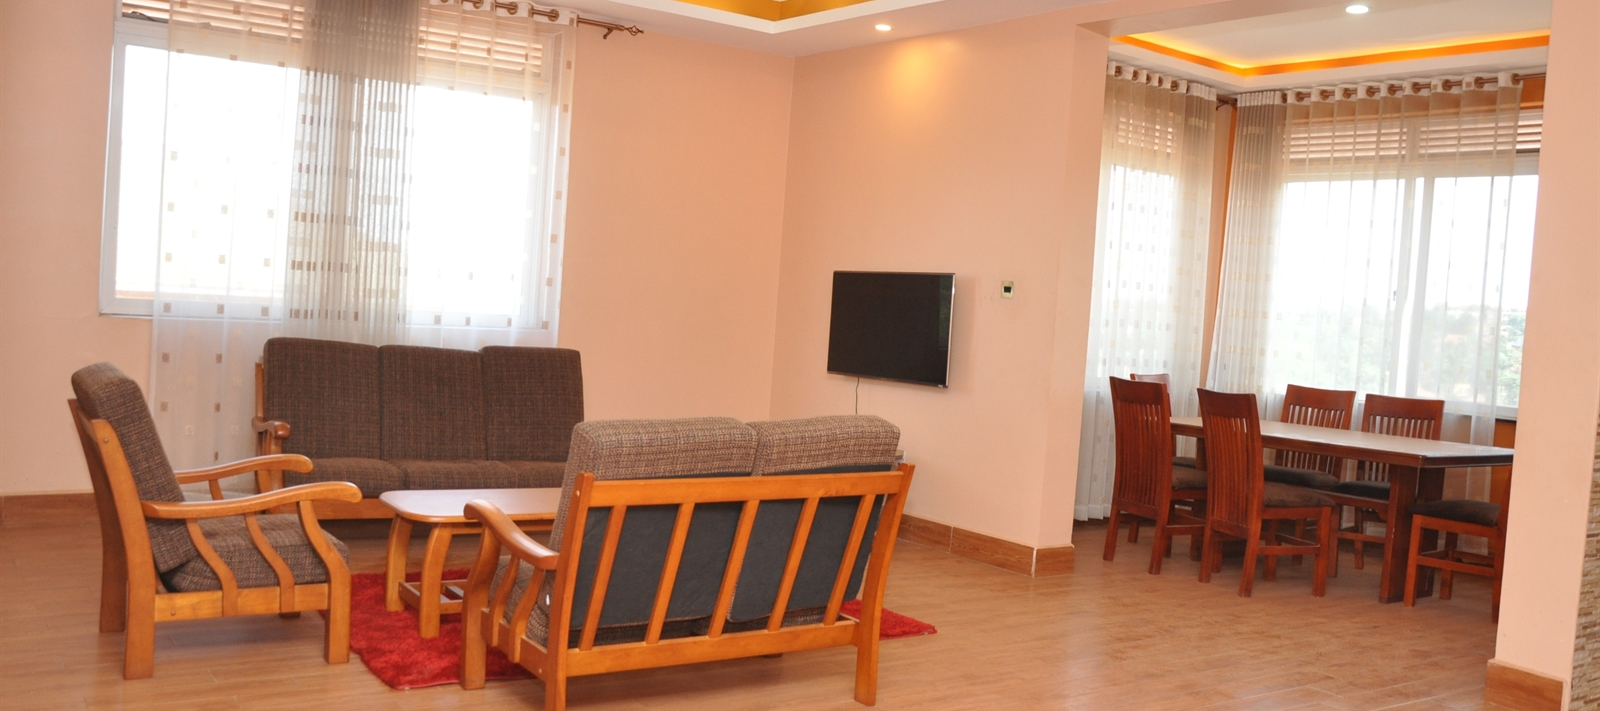 Furnished unit for rent in Ntinda